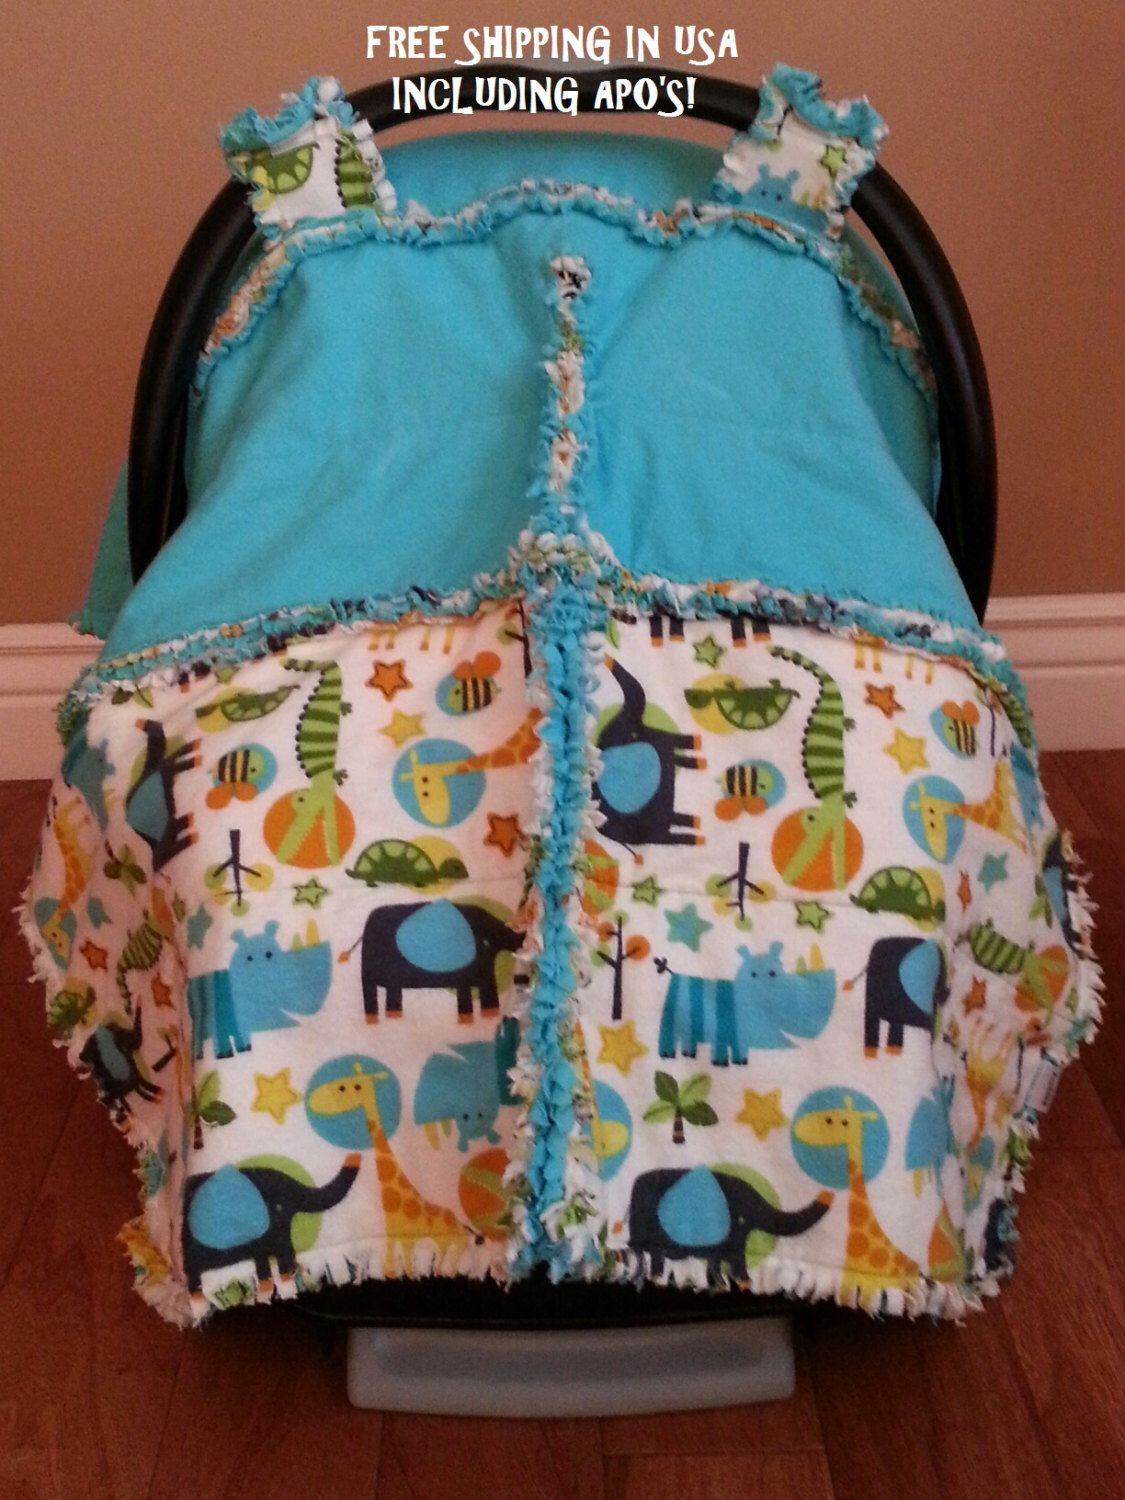 carseat cover u2013 winter carseat cover u2013 car seat cover u2013 canopy - tent - shade - baby boy u2013 baby girl - design your own & carseat cover u2013 winter carseat cover u2013 car seat cover u2013 canopy ...